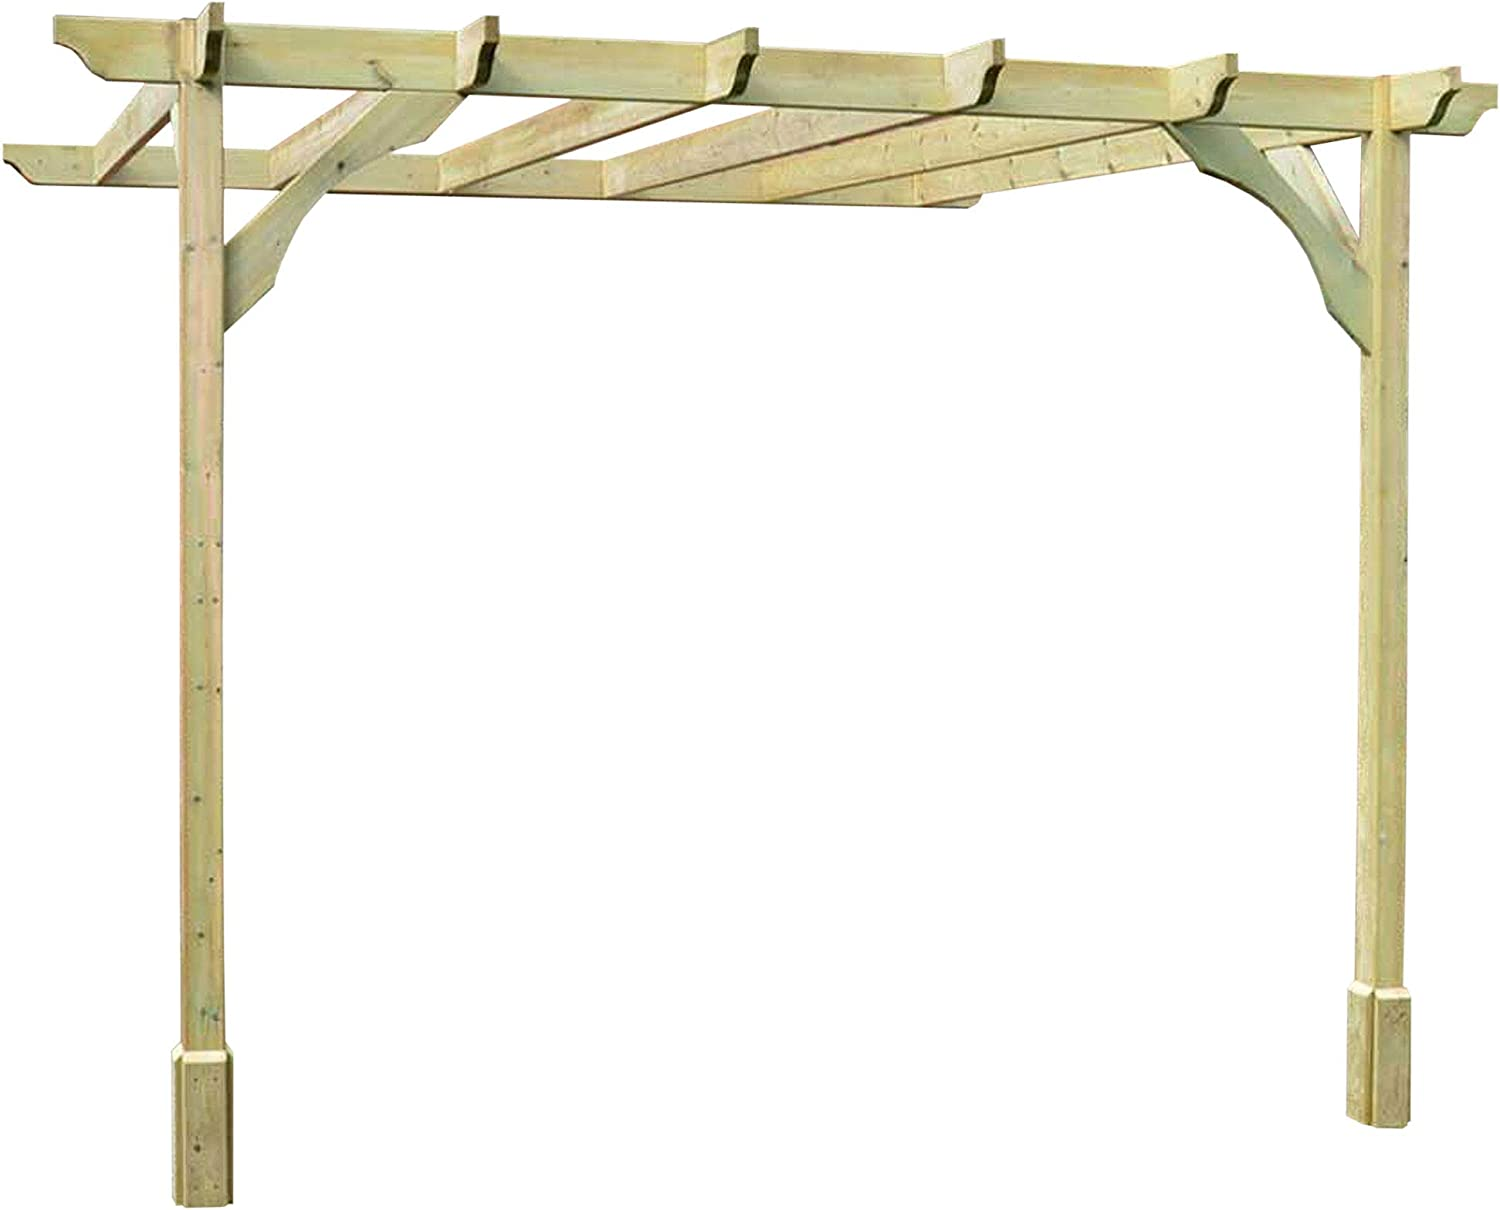 Rutland County Garden Furniture - Pérgola de Pared (5 Unidades ...